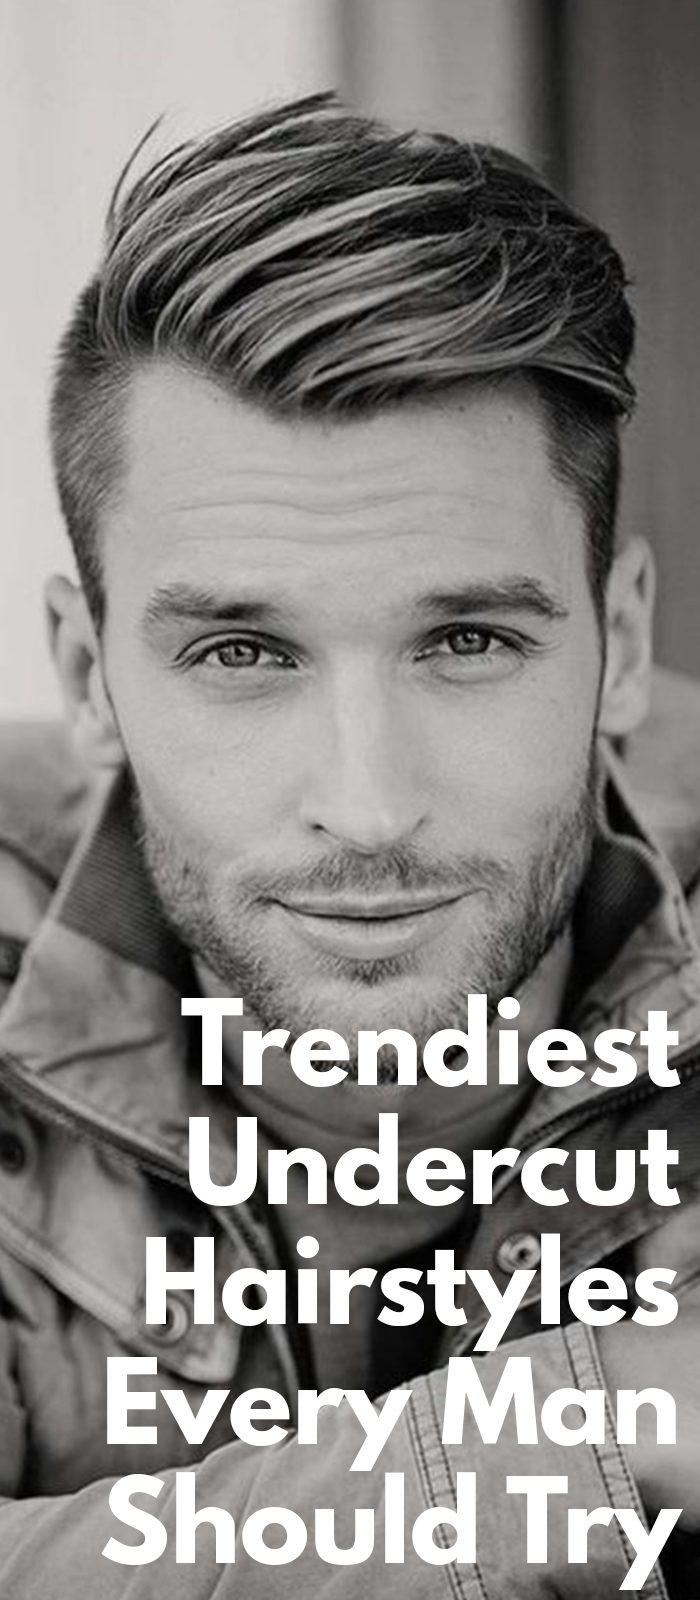 Trendiest Undercut Hairstyles Every Man Should Try